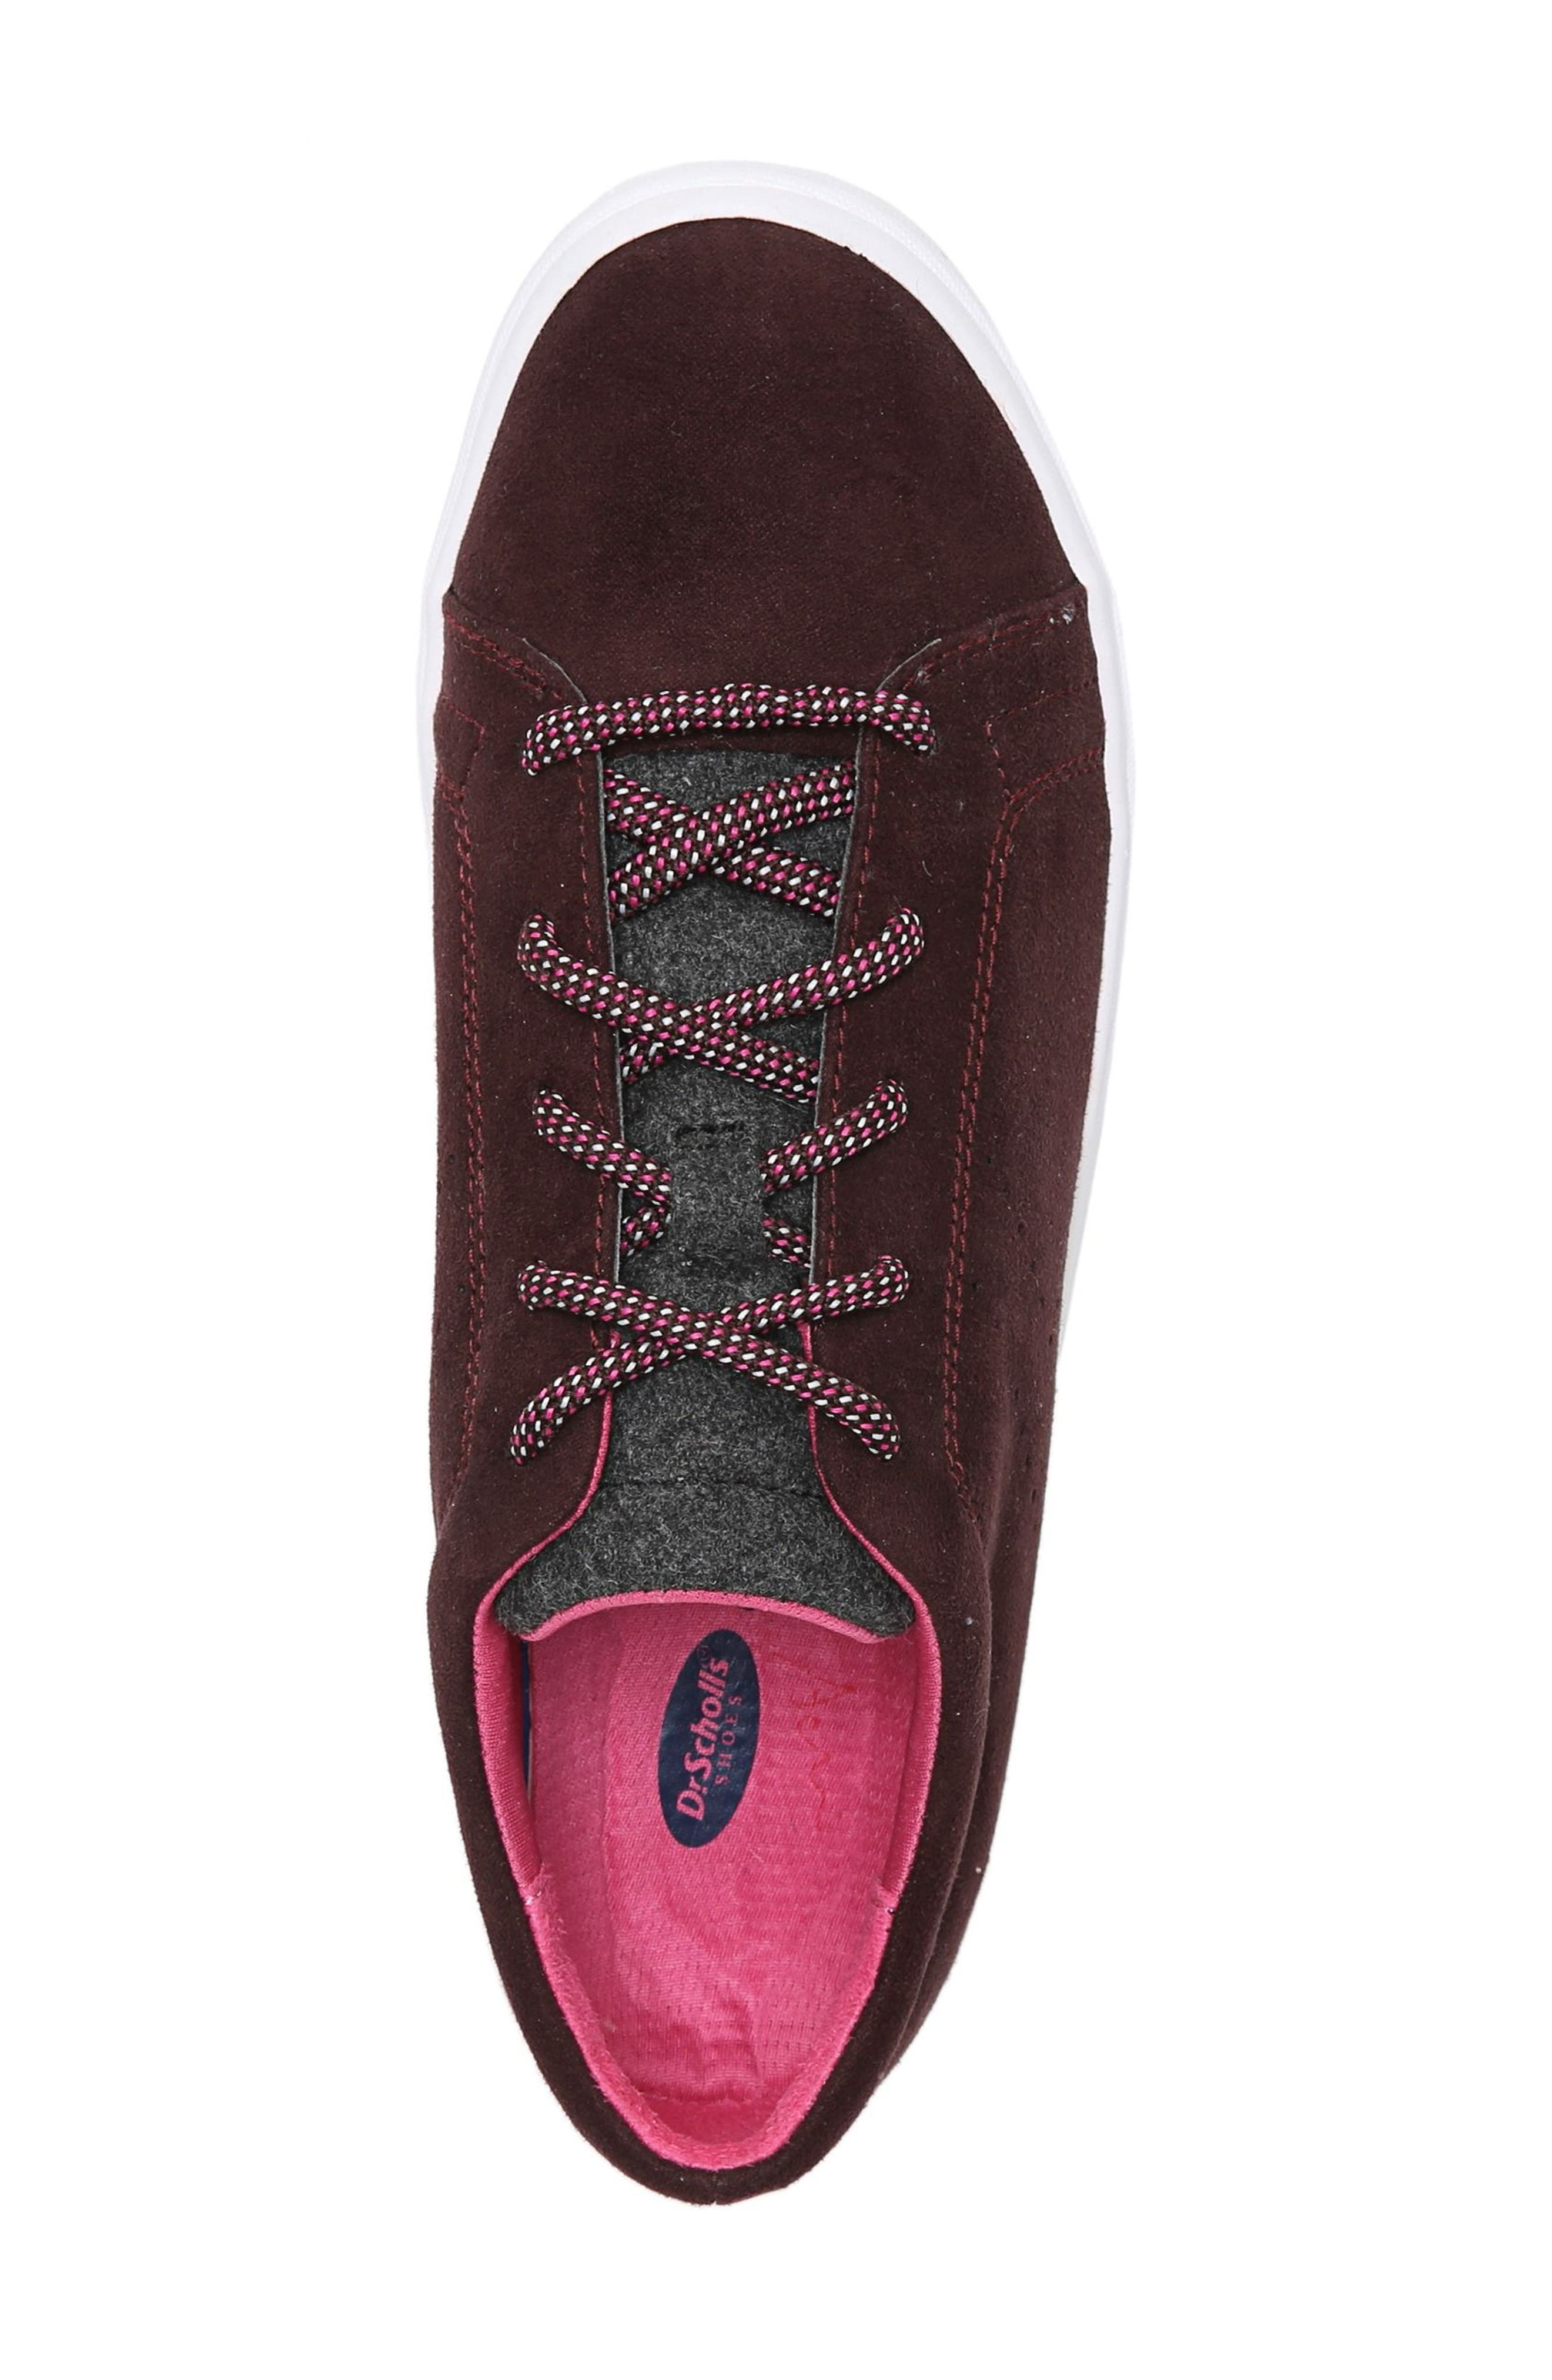 Wander Sneaker,                             Alternate thumbnail 5, color,                             Merlot Fabric